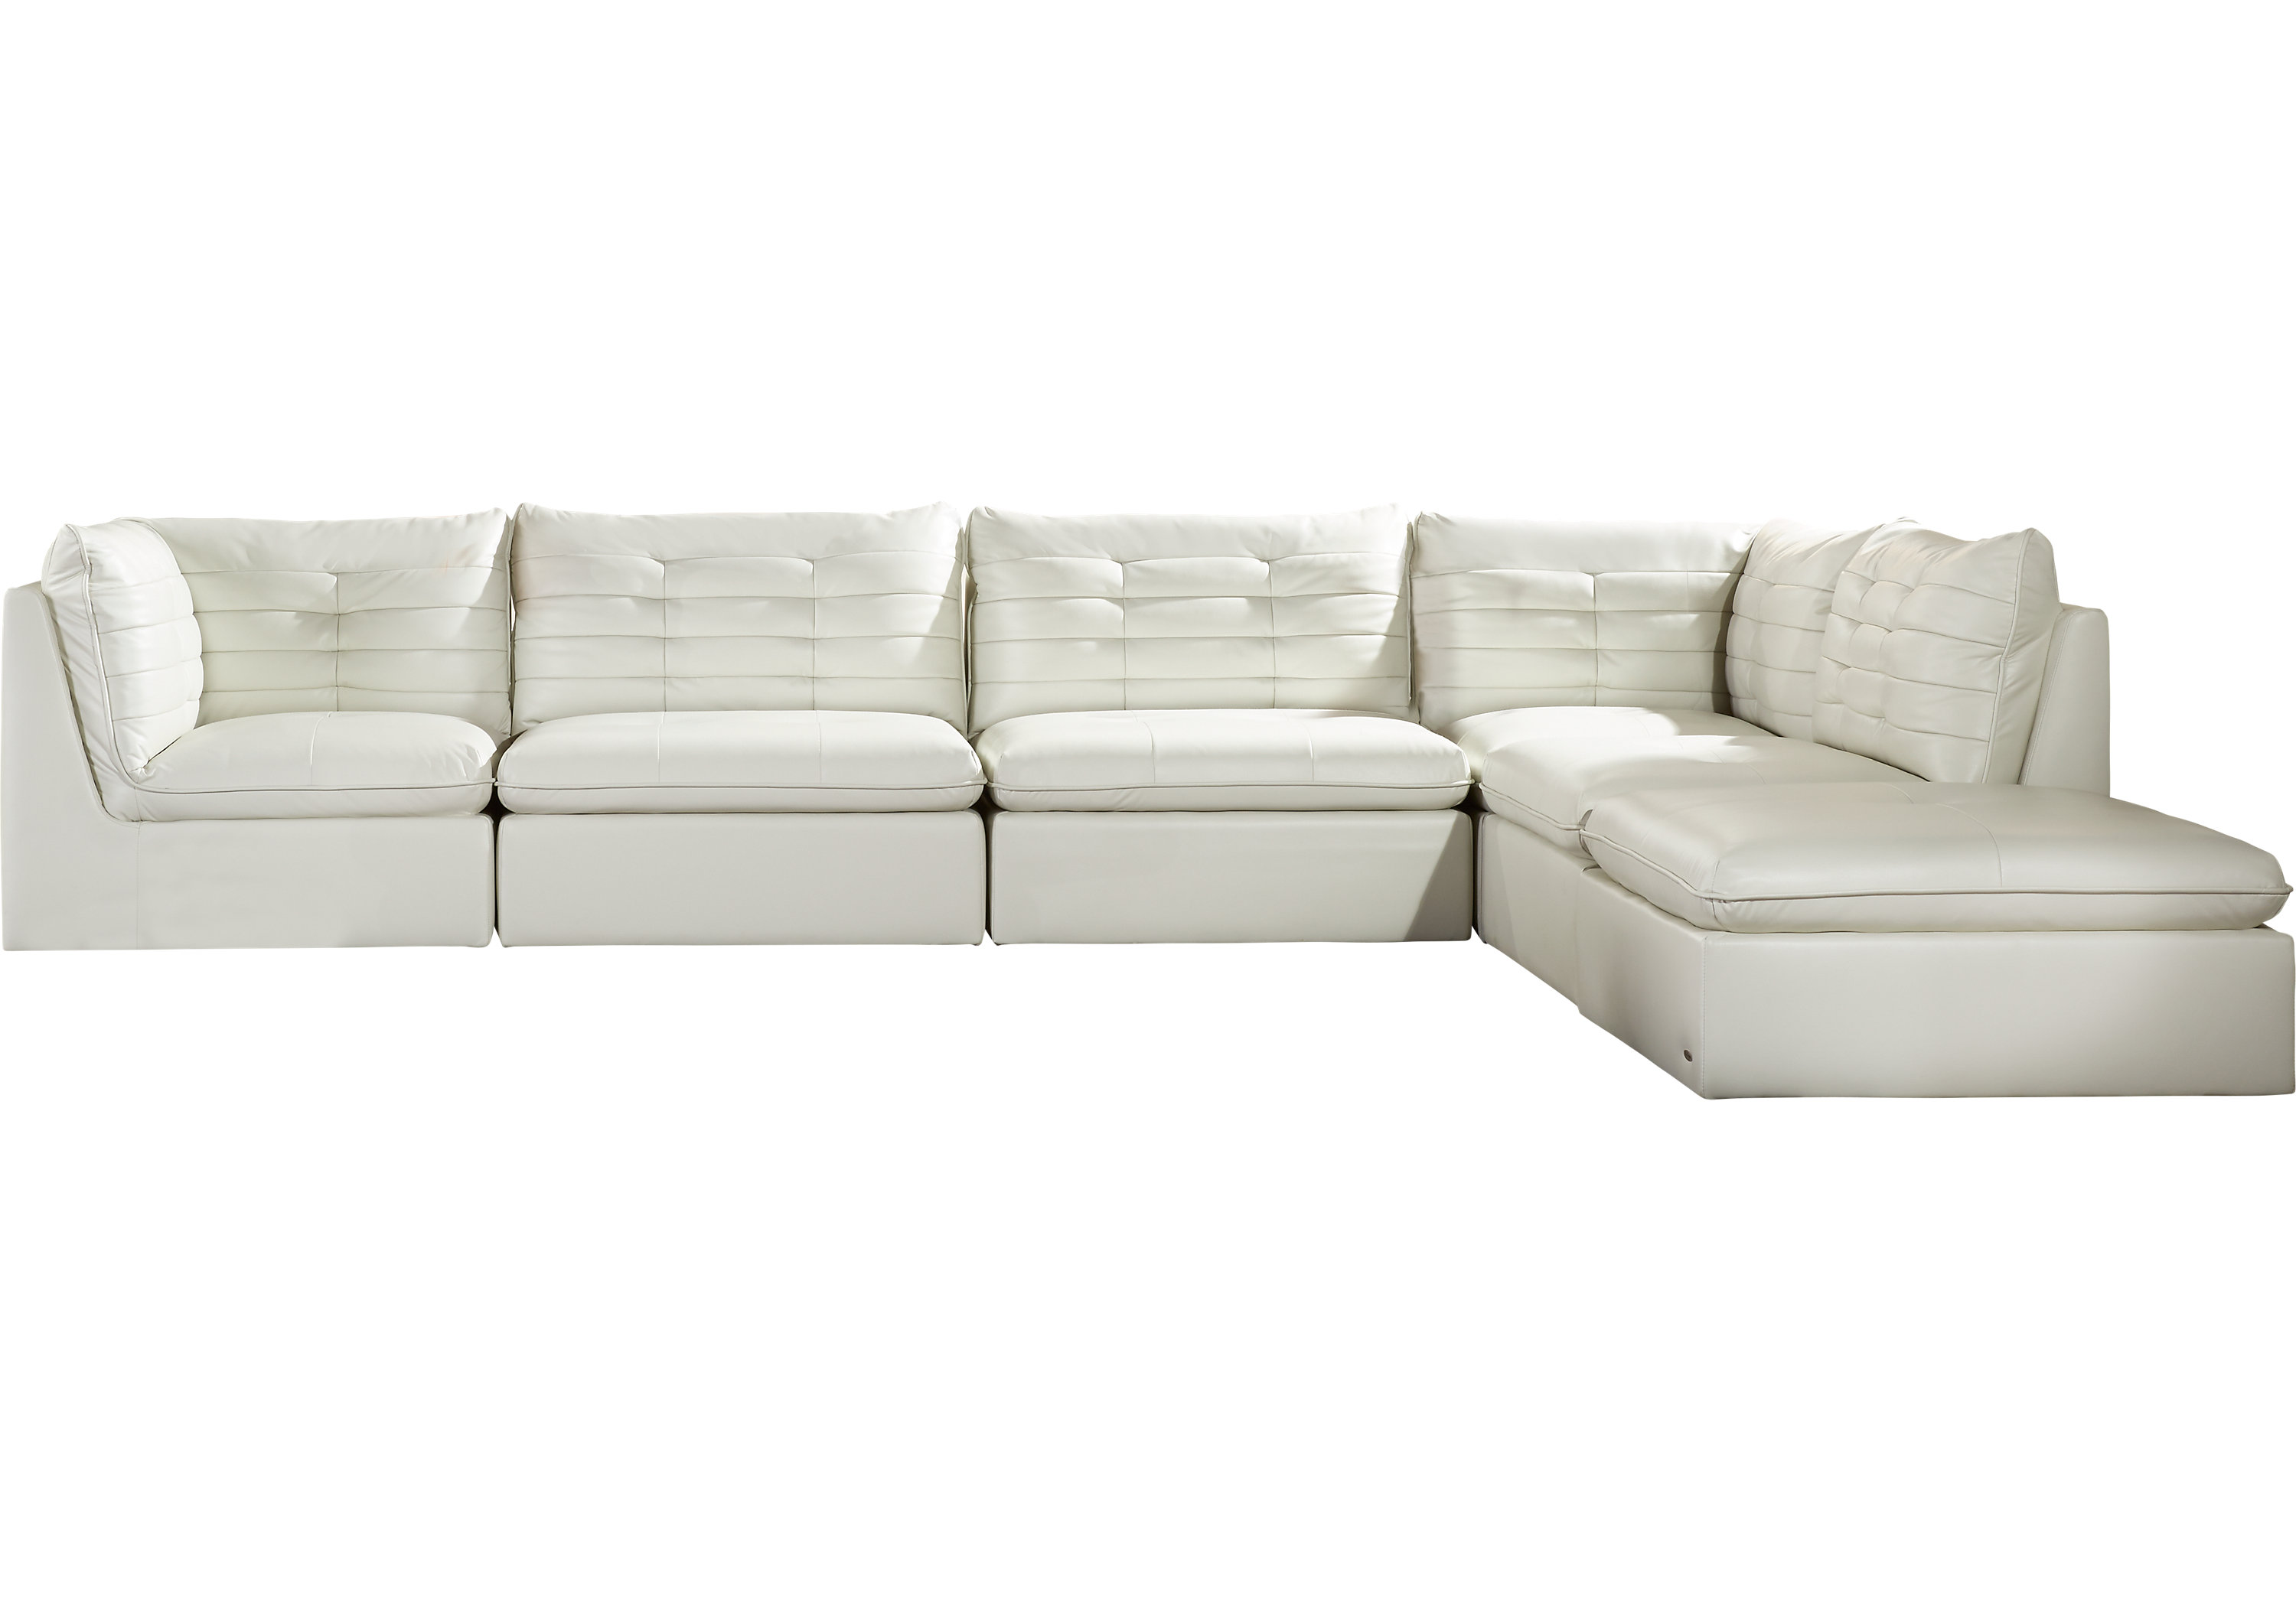 rooms cheap collection sofia sofas of couch chaise curved sectional vergara seater size tufted sofa to go full furniture bed leather